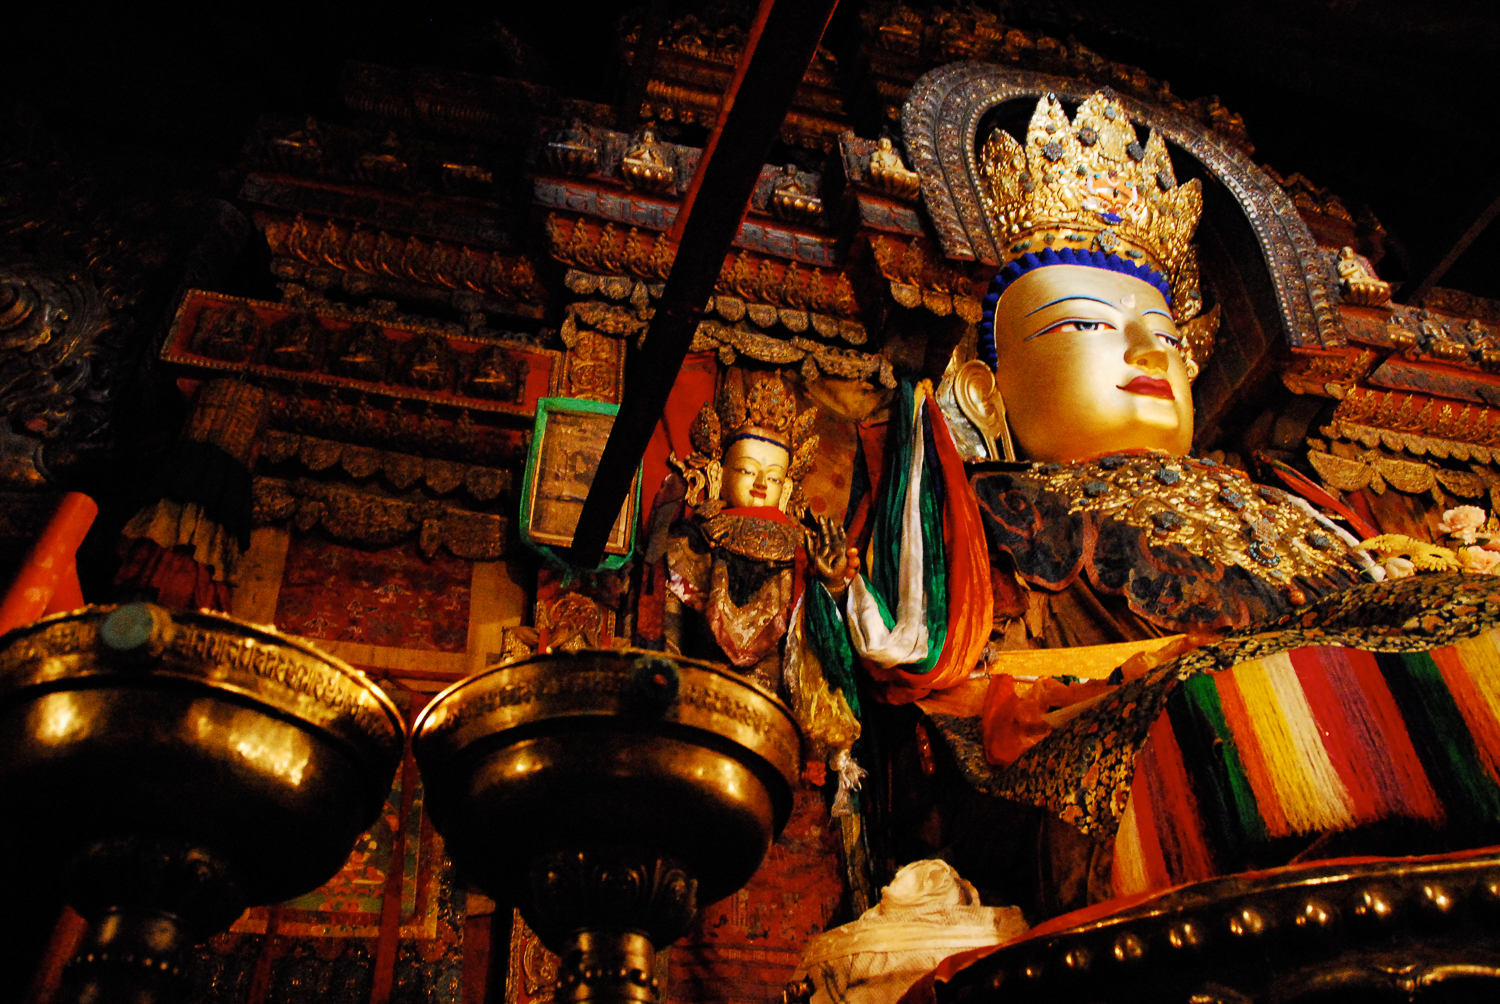 A Giant Buddha statue located inside the Tashilhunpo Monastery in Shigatse, the second-largest city in Tibet.